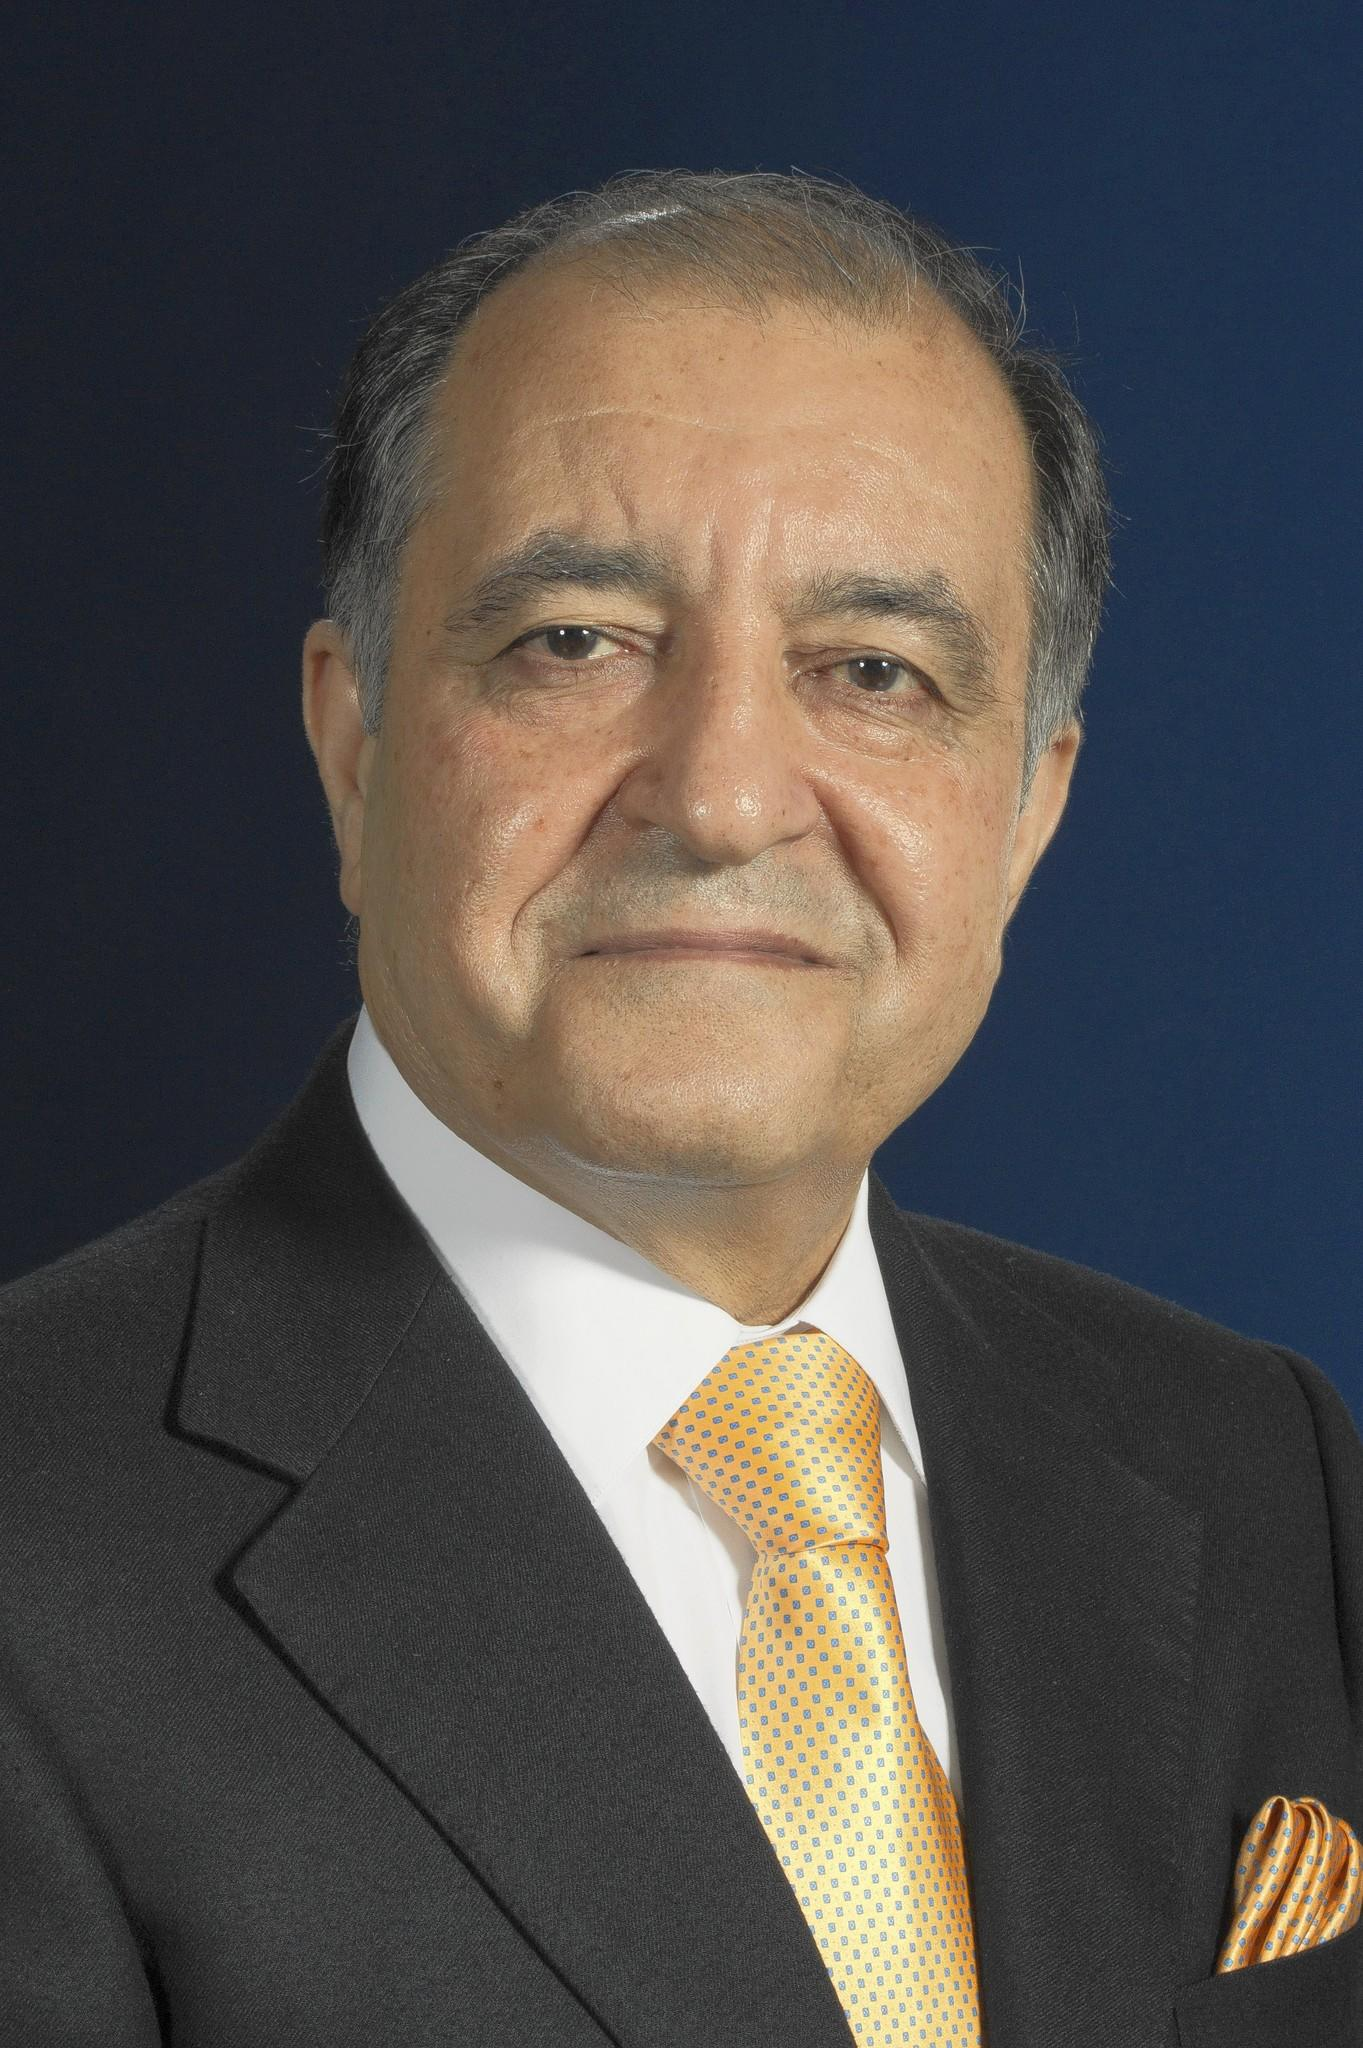 New Air Products CEO Seifi Ghasemi